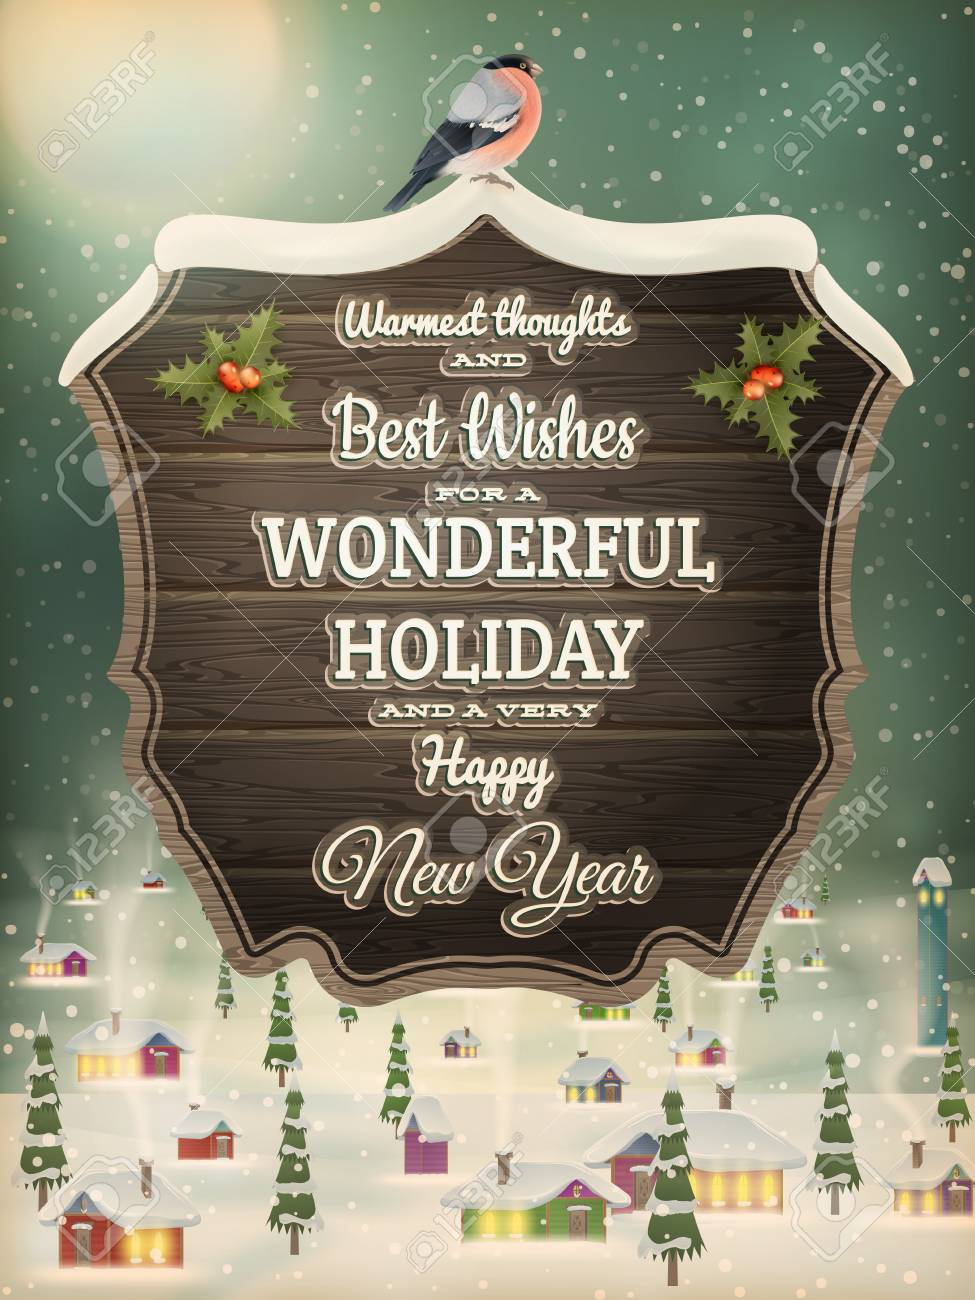 Weihnachtsgrüße Vintage.Christmas Greeting Calligraphy Vintage Street With Signboard